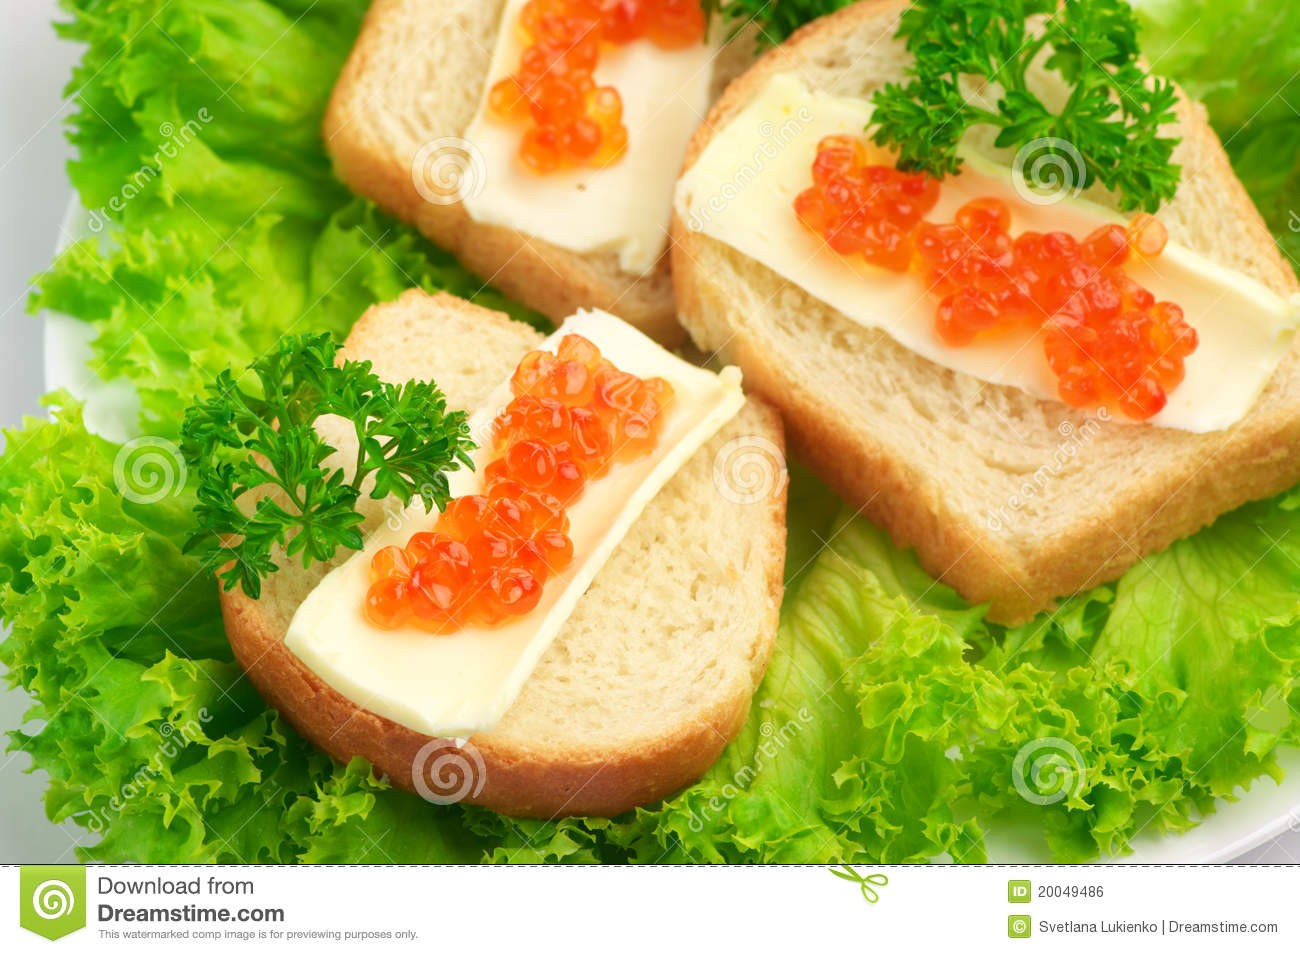 Canape with salmon caviar royalty free stock image image for Canape with caviar